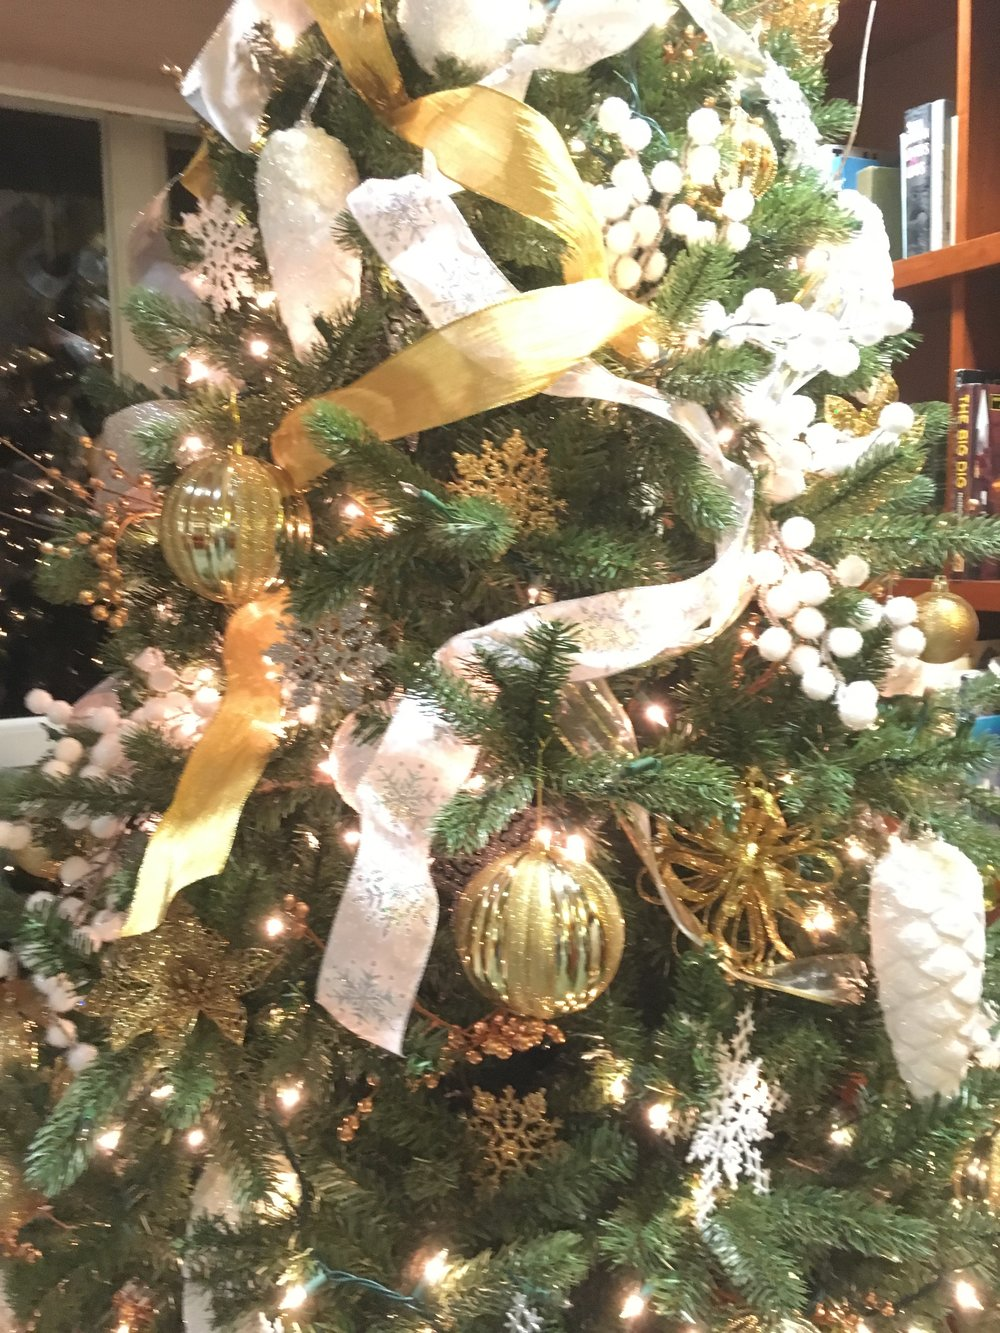 This tree and mantel got treated to a gold, silver and white winter wonderland look with snowflake ribbon and ornaments, gold, silver, and white ornaments in various shapes and sizes, and gold berry sprigs and white snowball berry branches